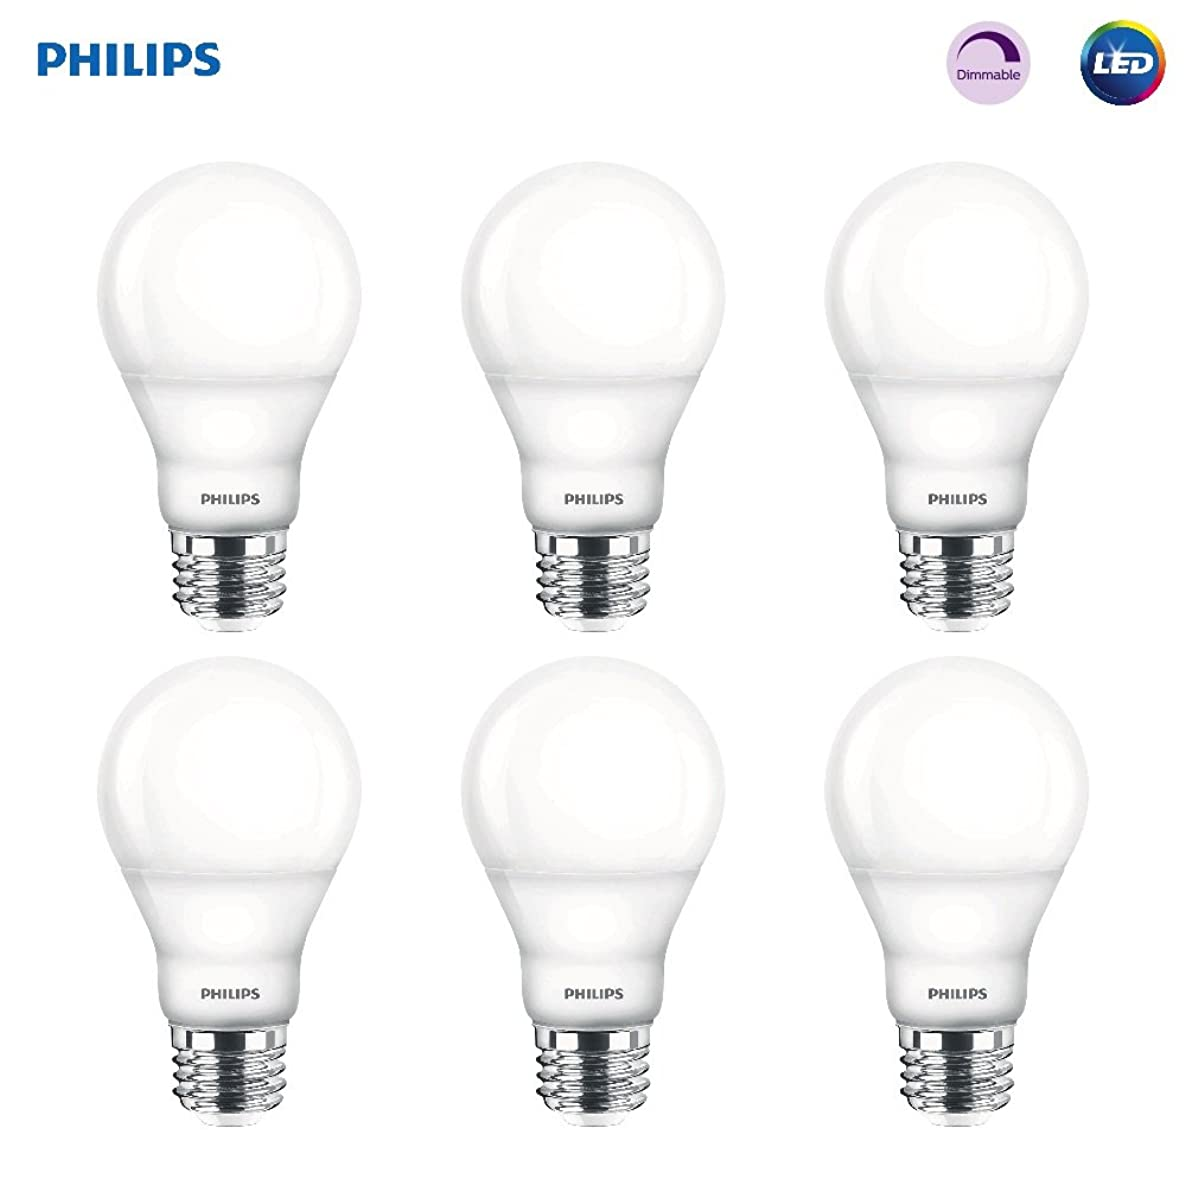 Philips LED Dimmable A19 Frosted Light Bulb: 800-Lumen, 2700-Kelvin, 9.5-Watt (60-Watt Equivalent), E26 Base, Soft White, 6-Pack (Old Generation)